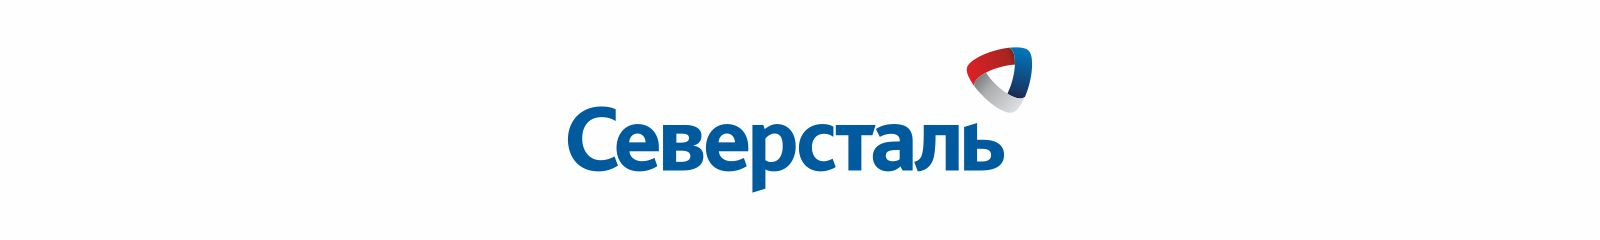 severstal.com